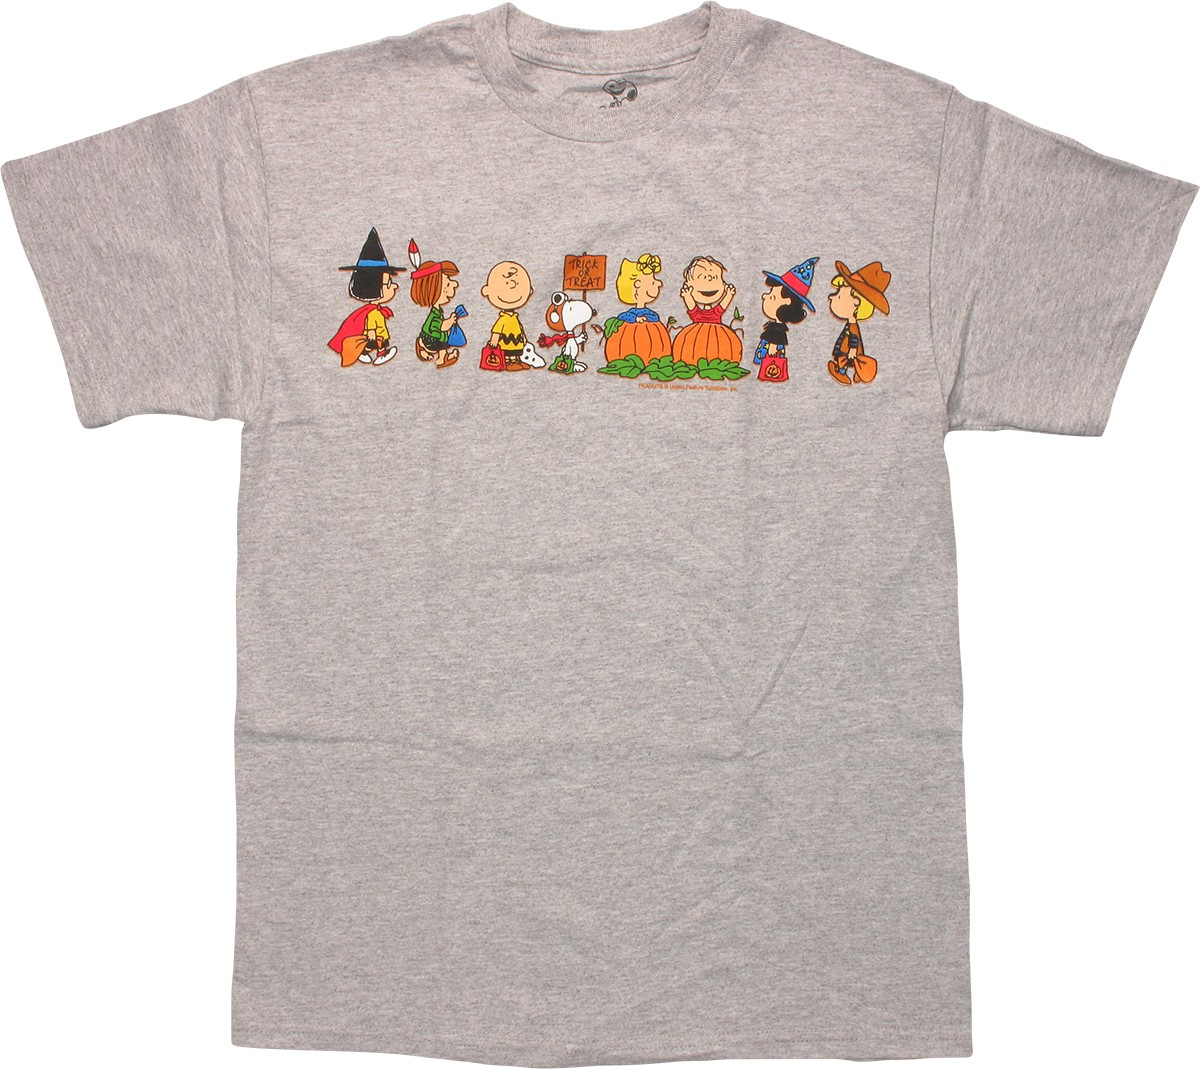 Peanuts the great pumpkin charlie brown t shirt The great t shirt